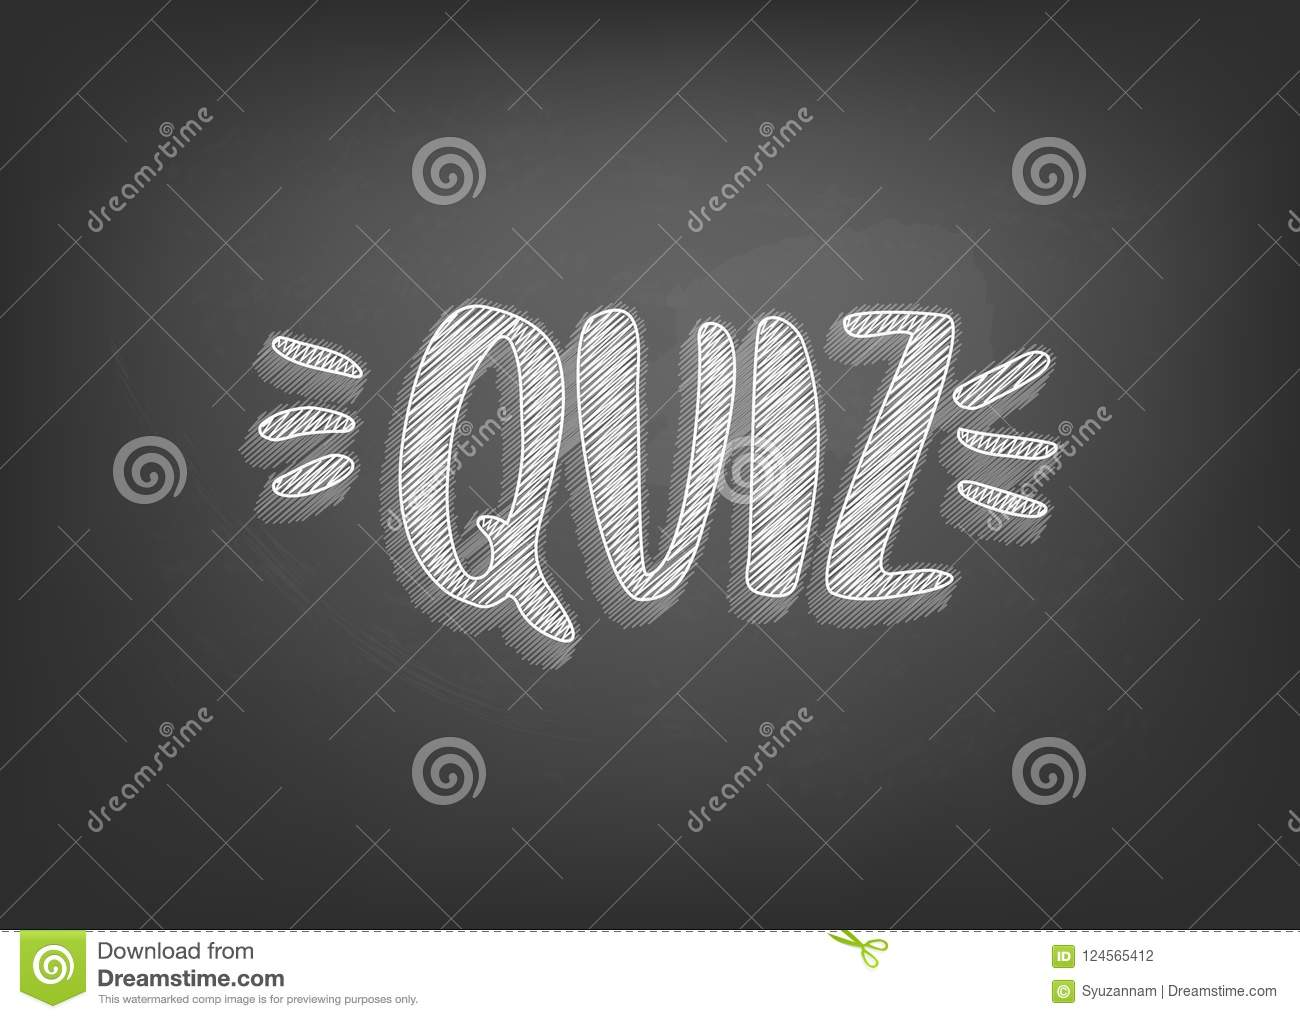 Quiz Retro Card With Handwritten Chalk Lettering Template For Social Media Vector Illustration